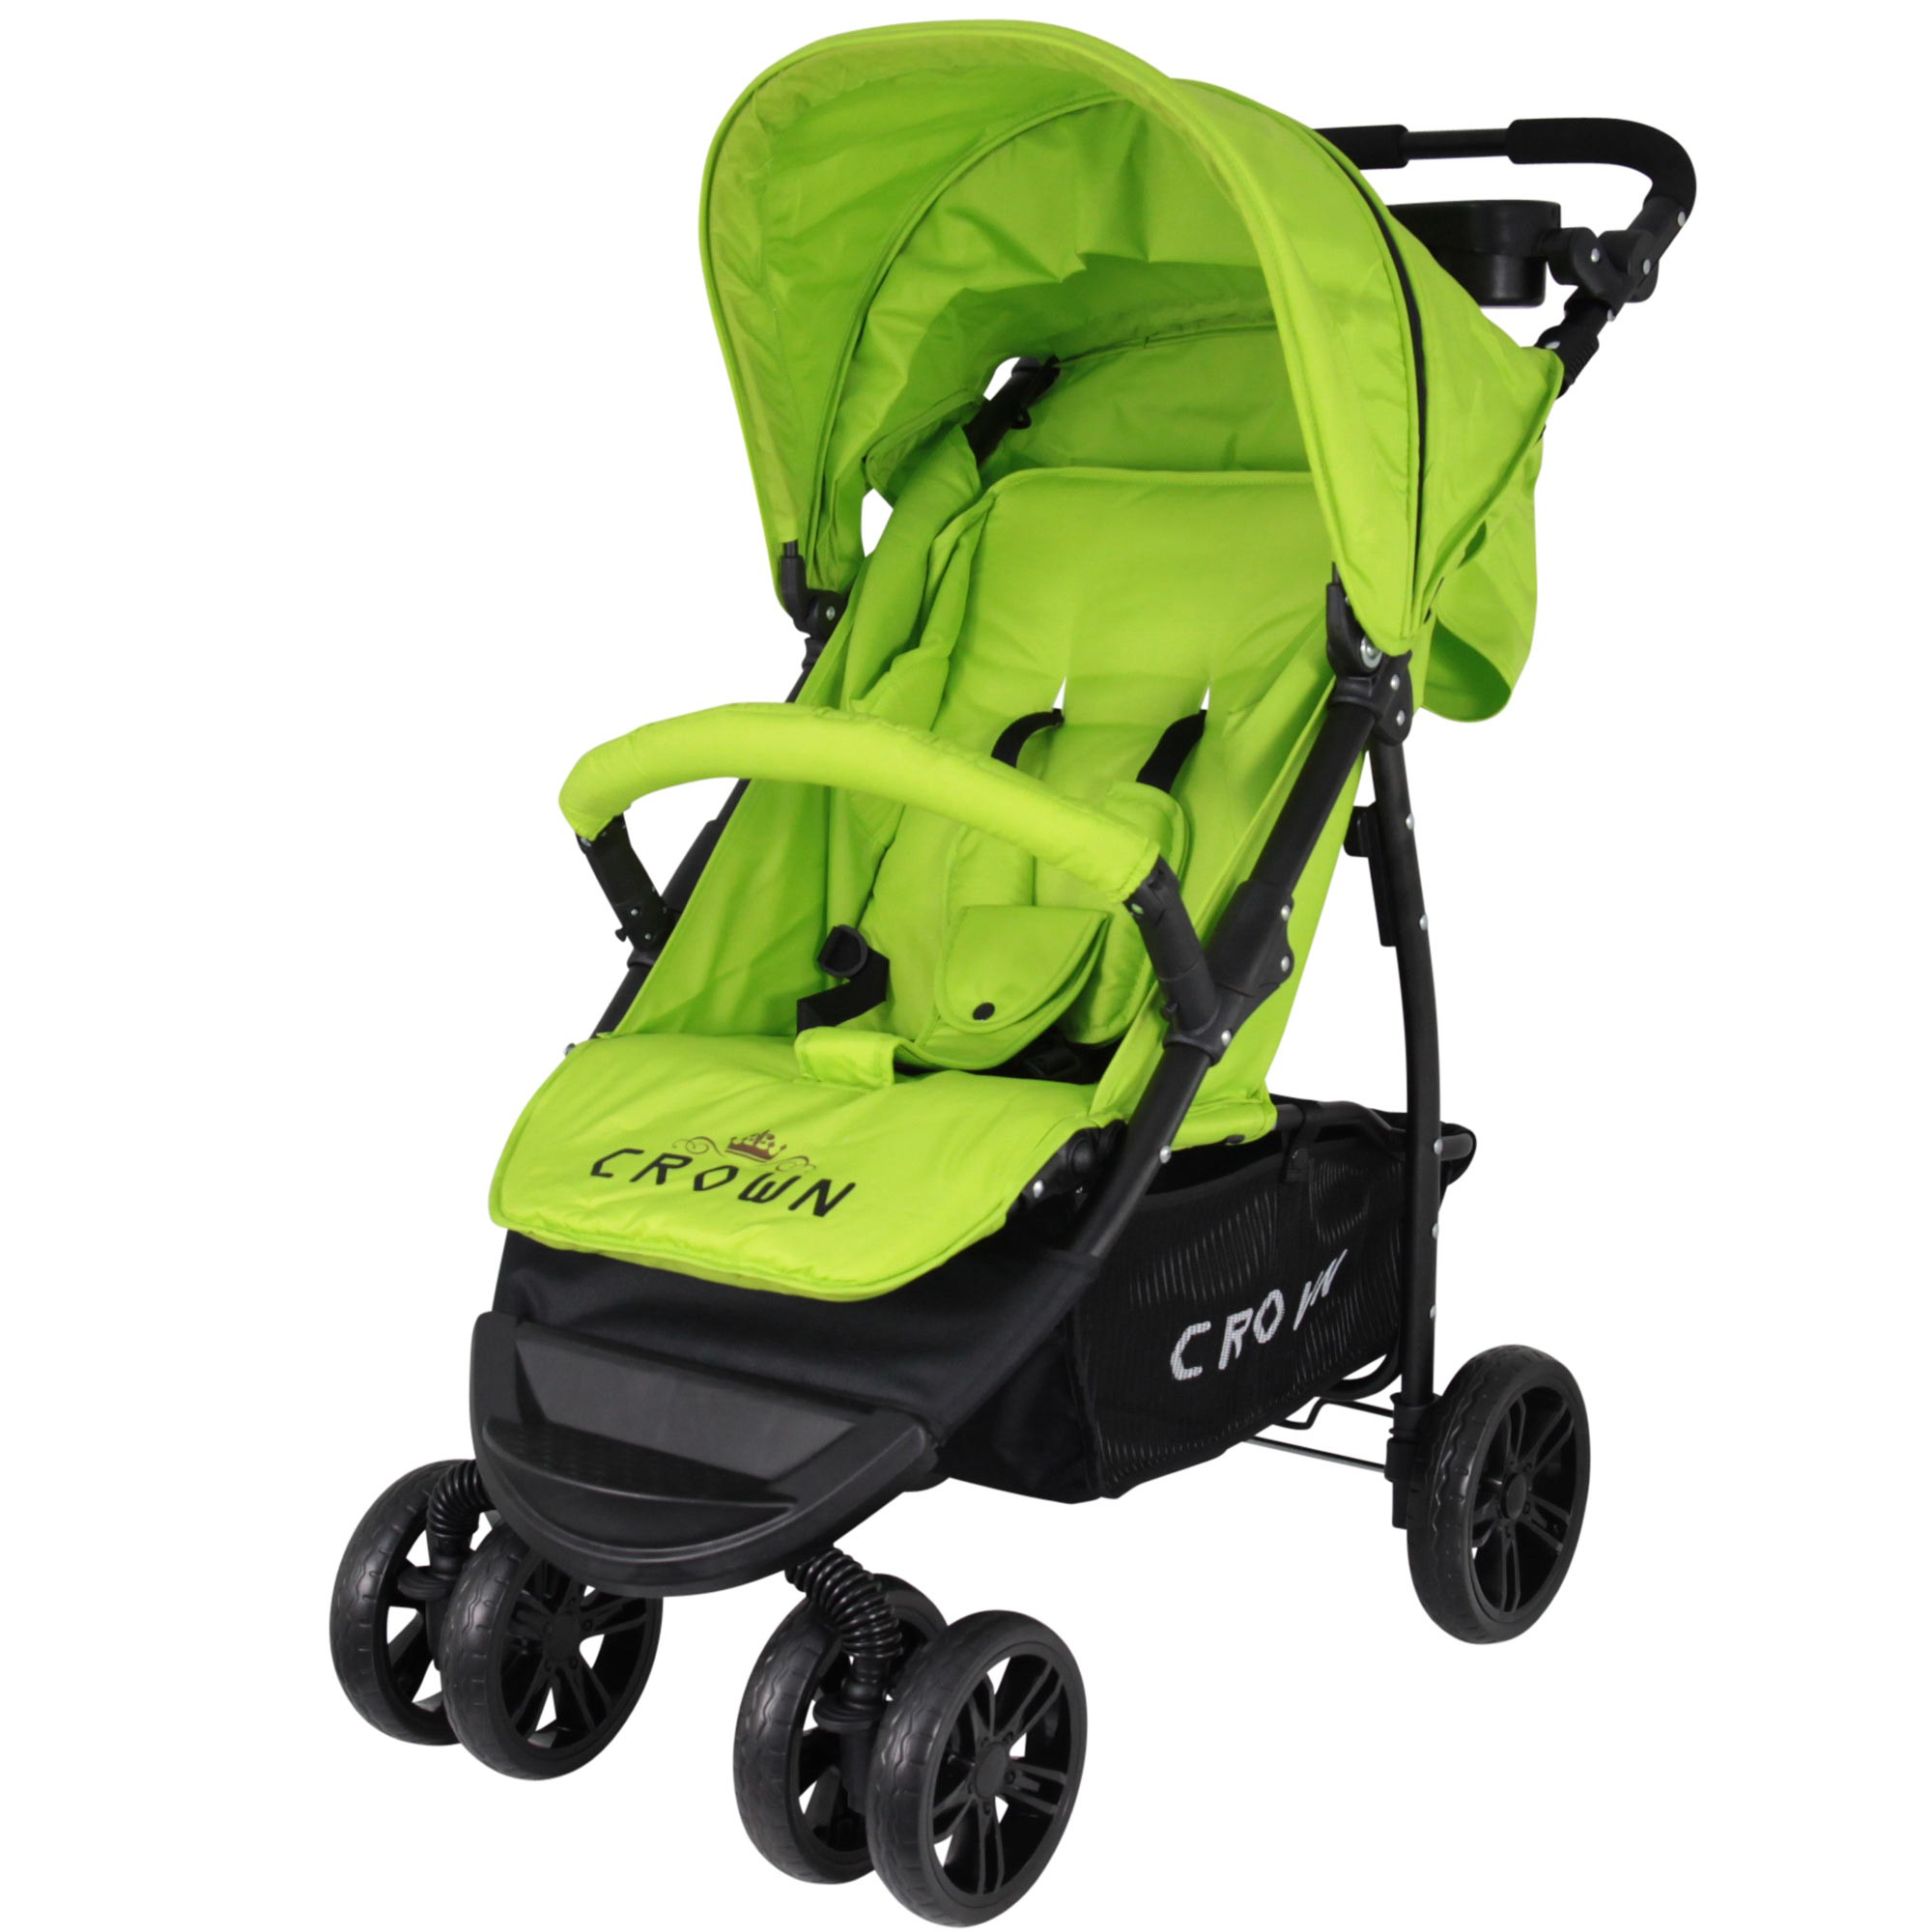 st560 crown kinderwagen buggy sport jogger farbe gr n kinderwagen buggy. Black Bedroom Furniture Sets. Home Design Ideas